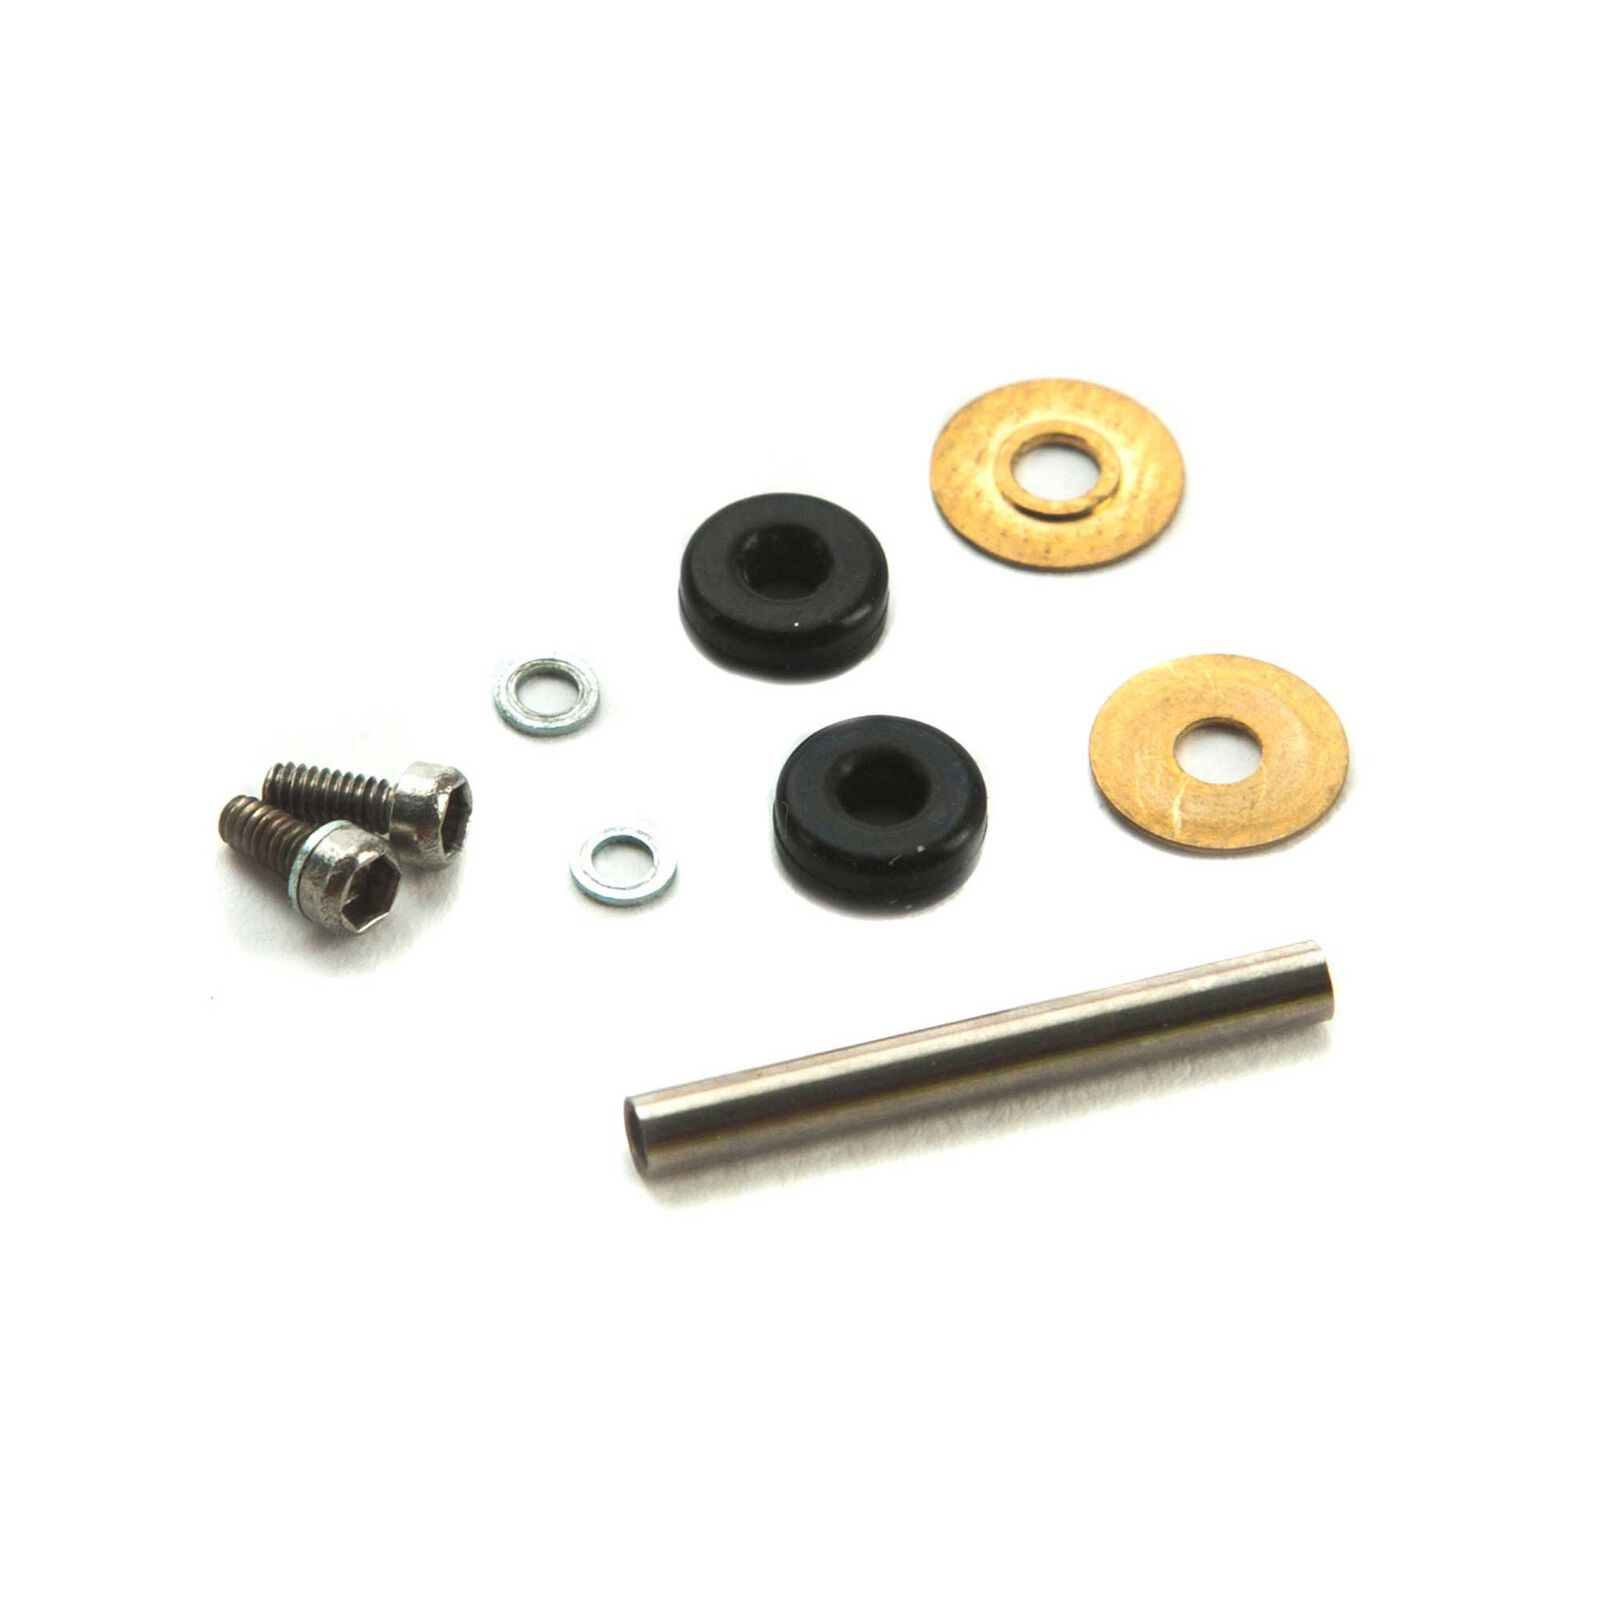 Feathering Spindle with O-Rings, Bushings, Hardwware: mCP X BL